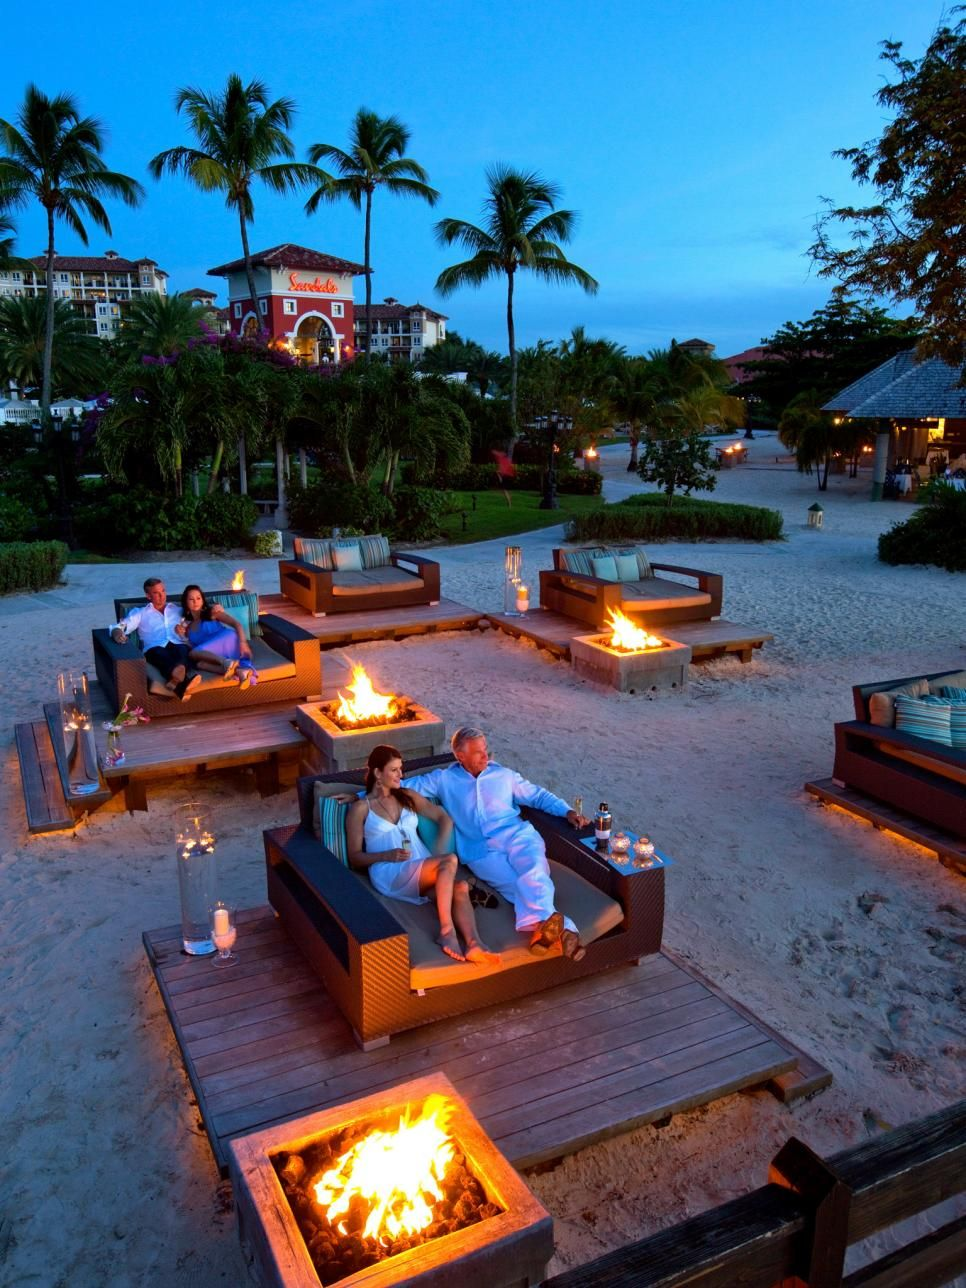 Resorts With the Sexiest Fire Pits | Pequea isla, El pozo ...